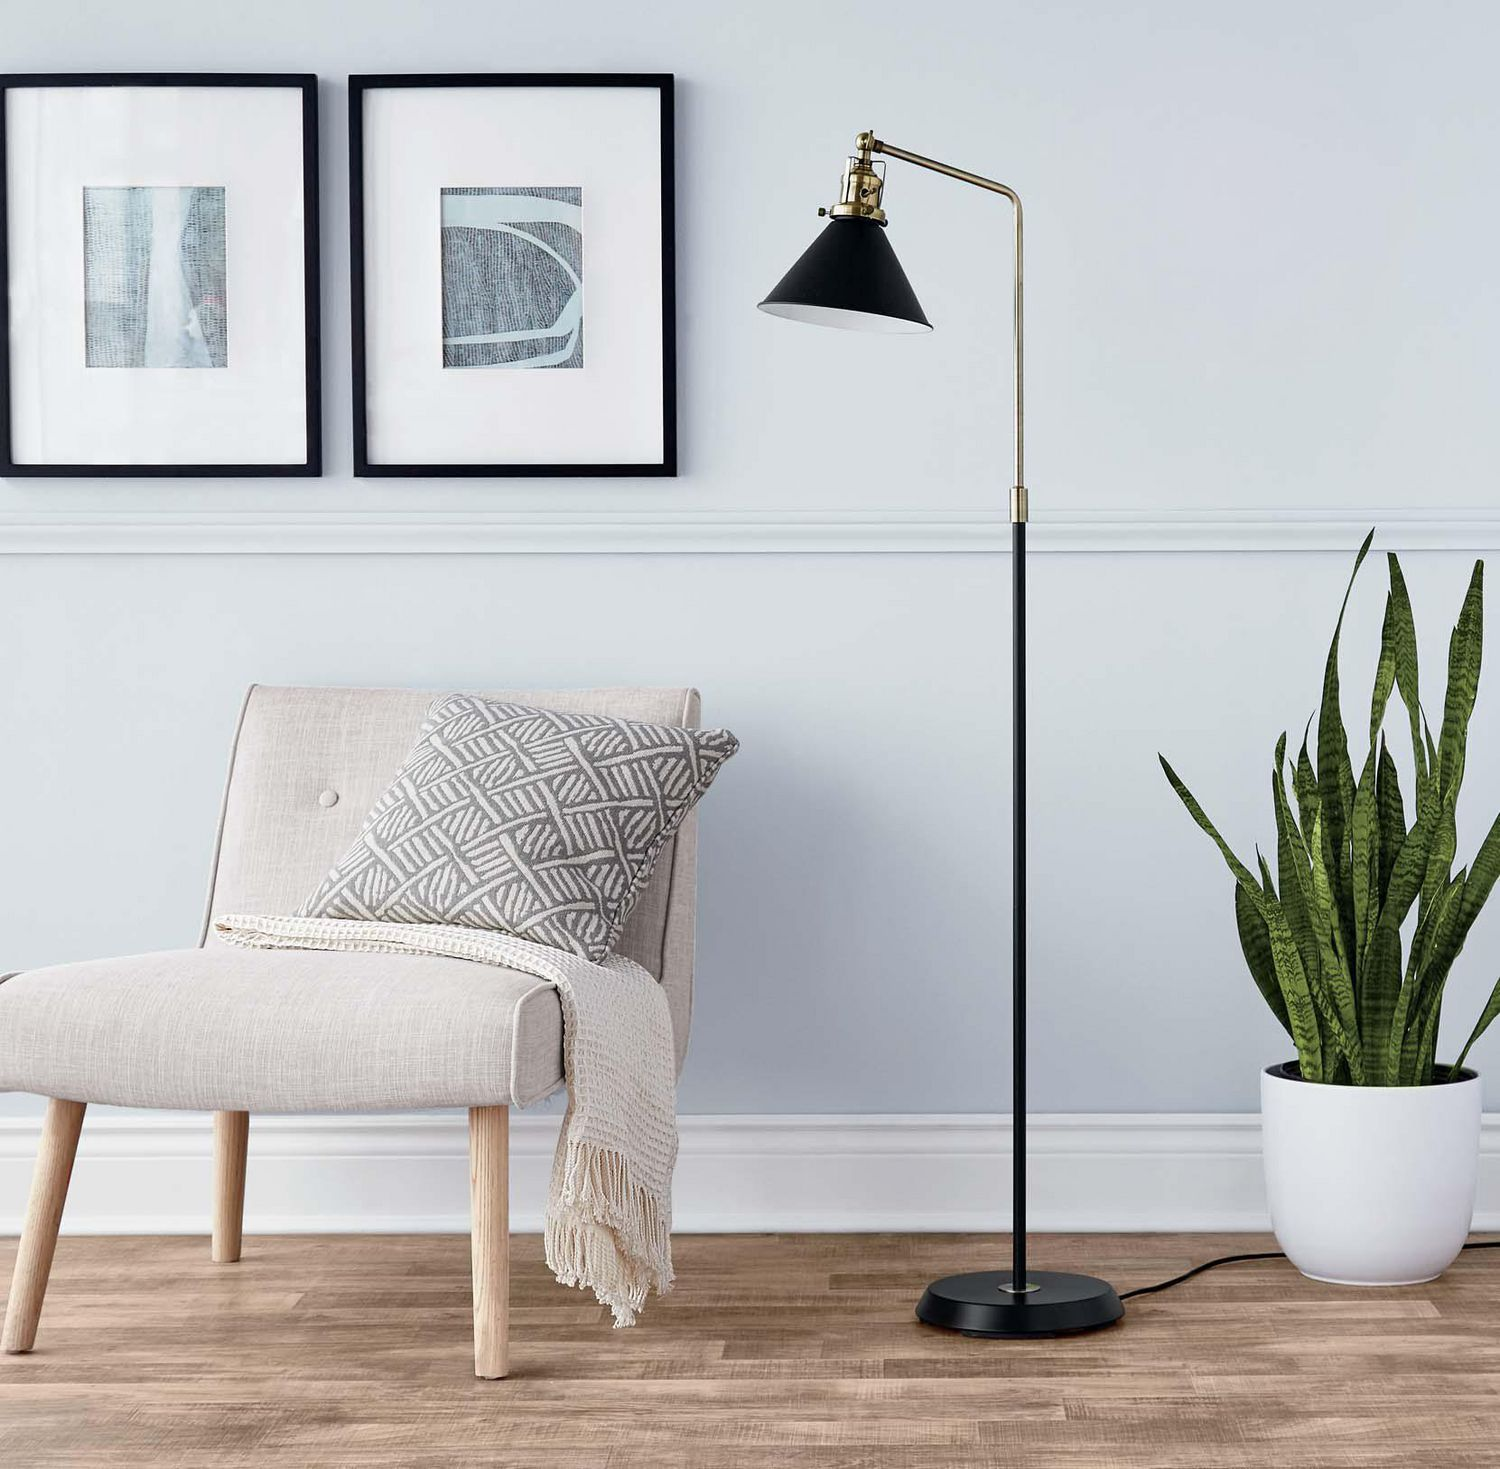 Reading Floor Lamp Canada, Reading Floor Lamps For Living Room